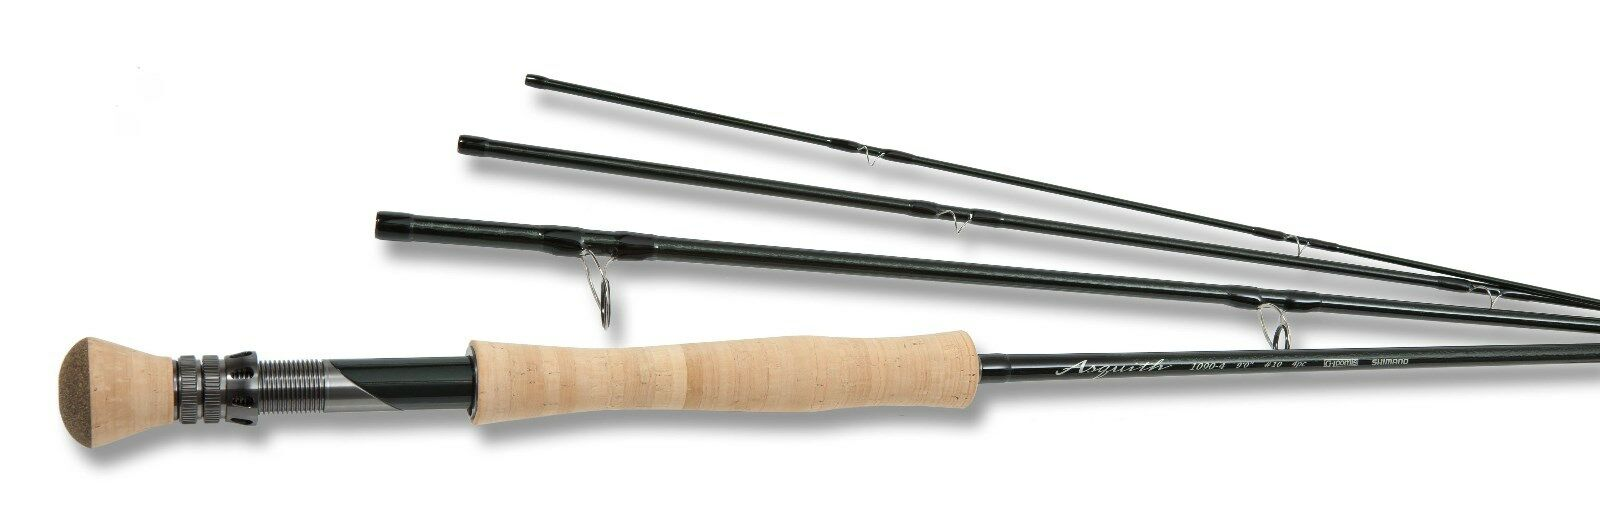 G. Loomis   Asquith Fly Rod 9' 9wt. Mod.-Fast  find your favorite here